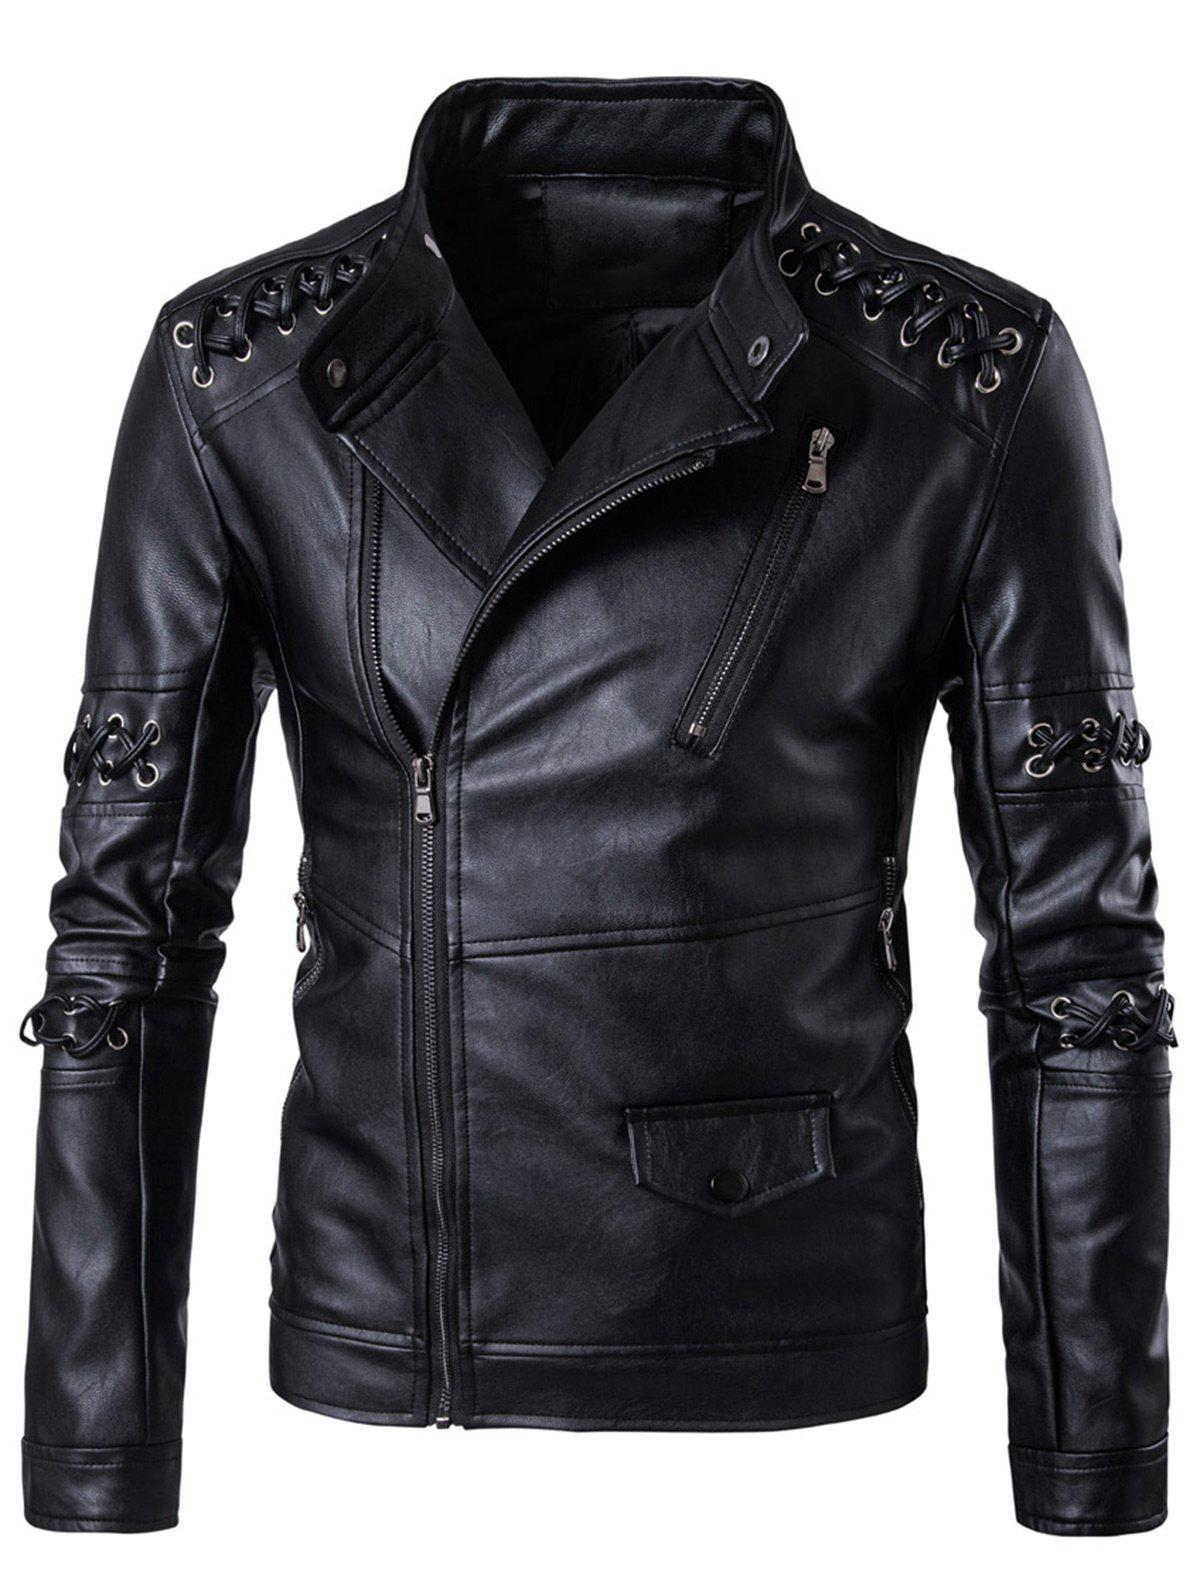 Asymétrique Zip Up Sennit Design Biker Jacket - Noir L